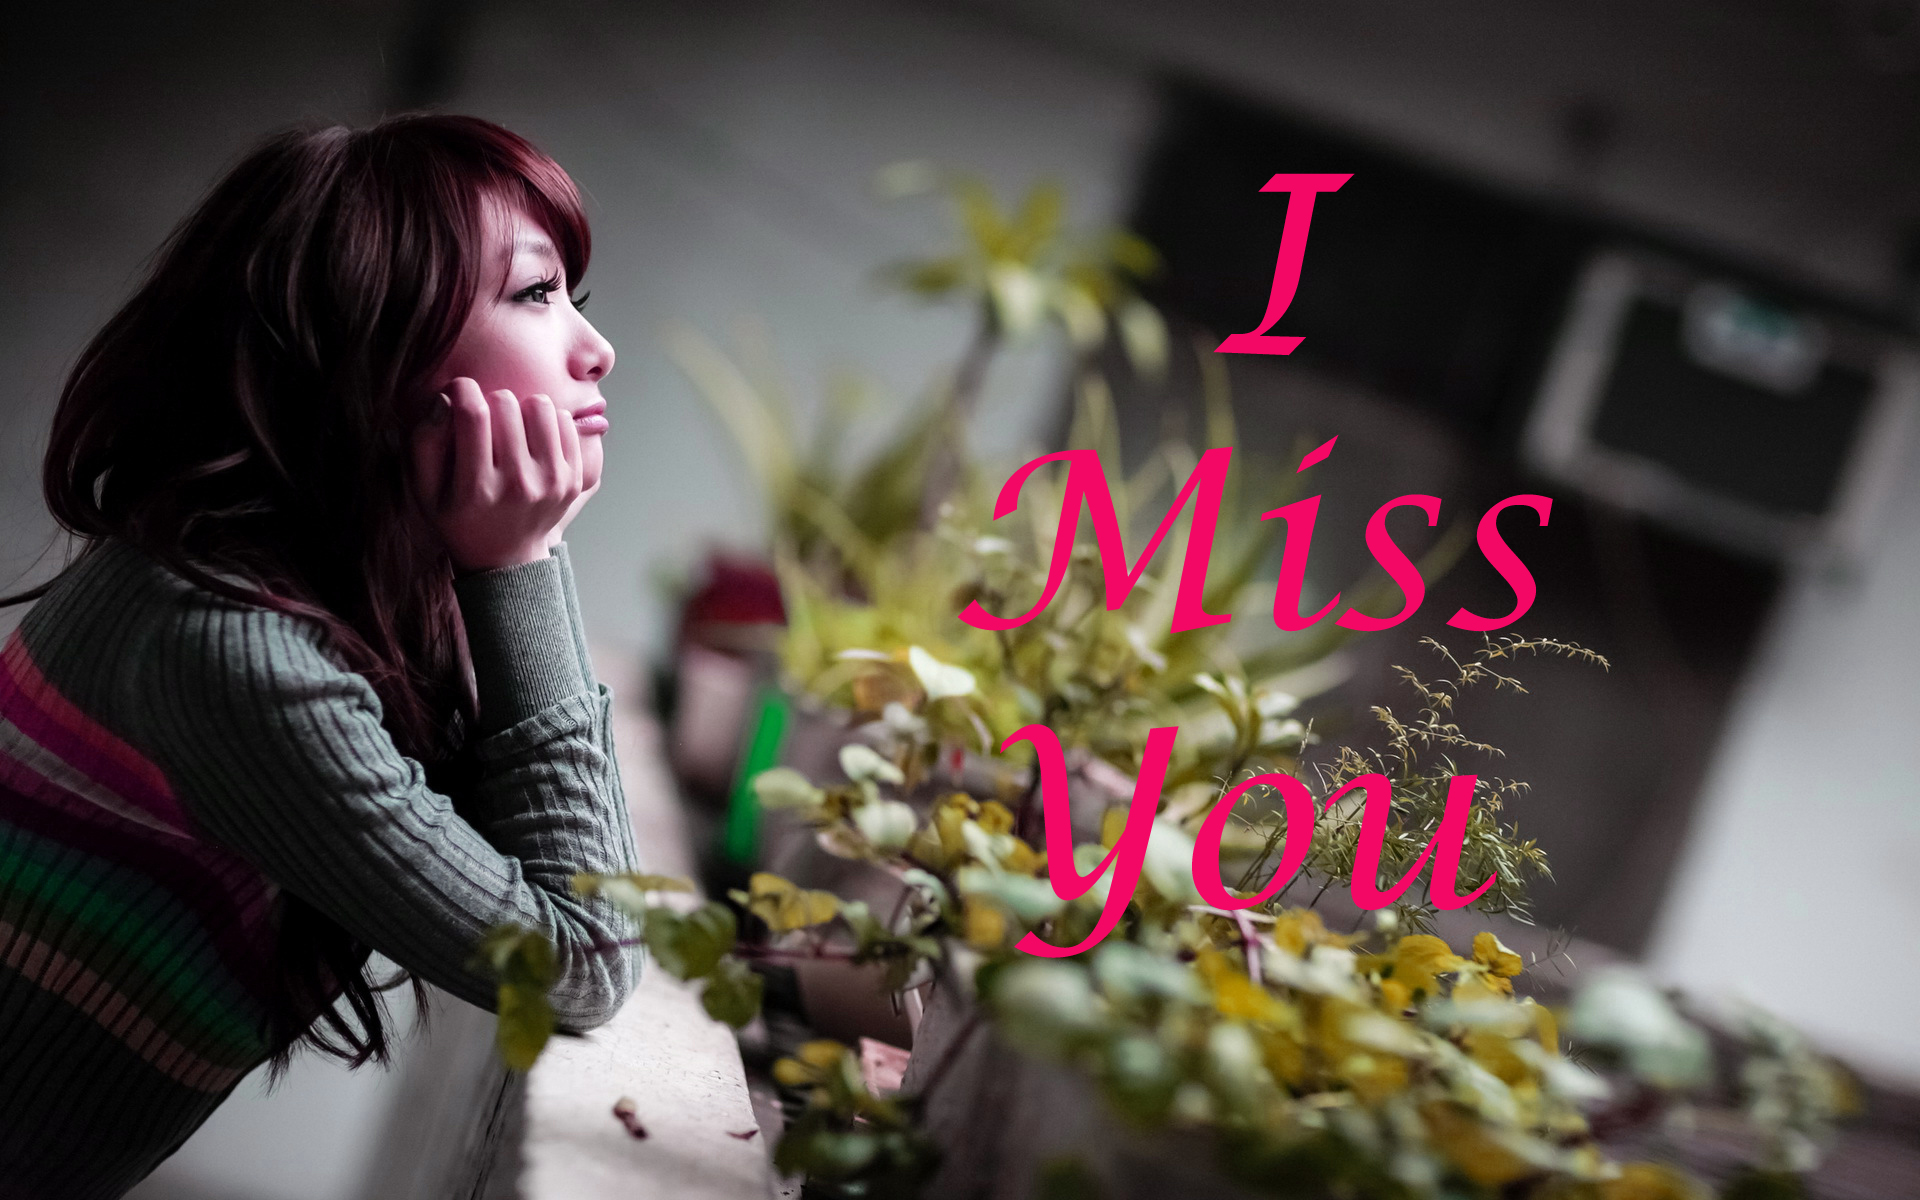 Miss U Mobile Wallpaper Pictures To Pin On Pinterest - HD Wallpaper